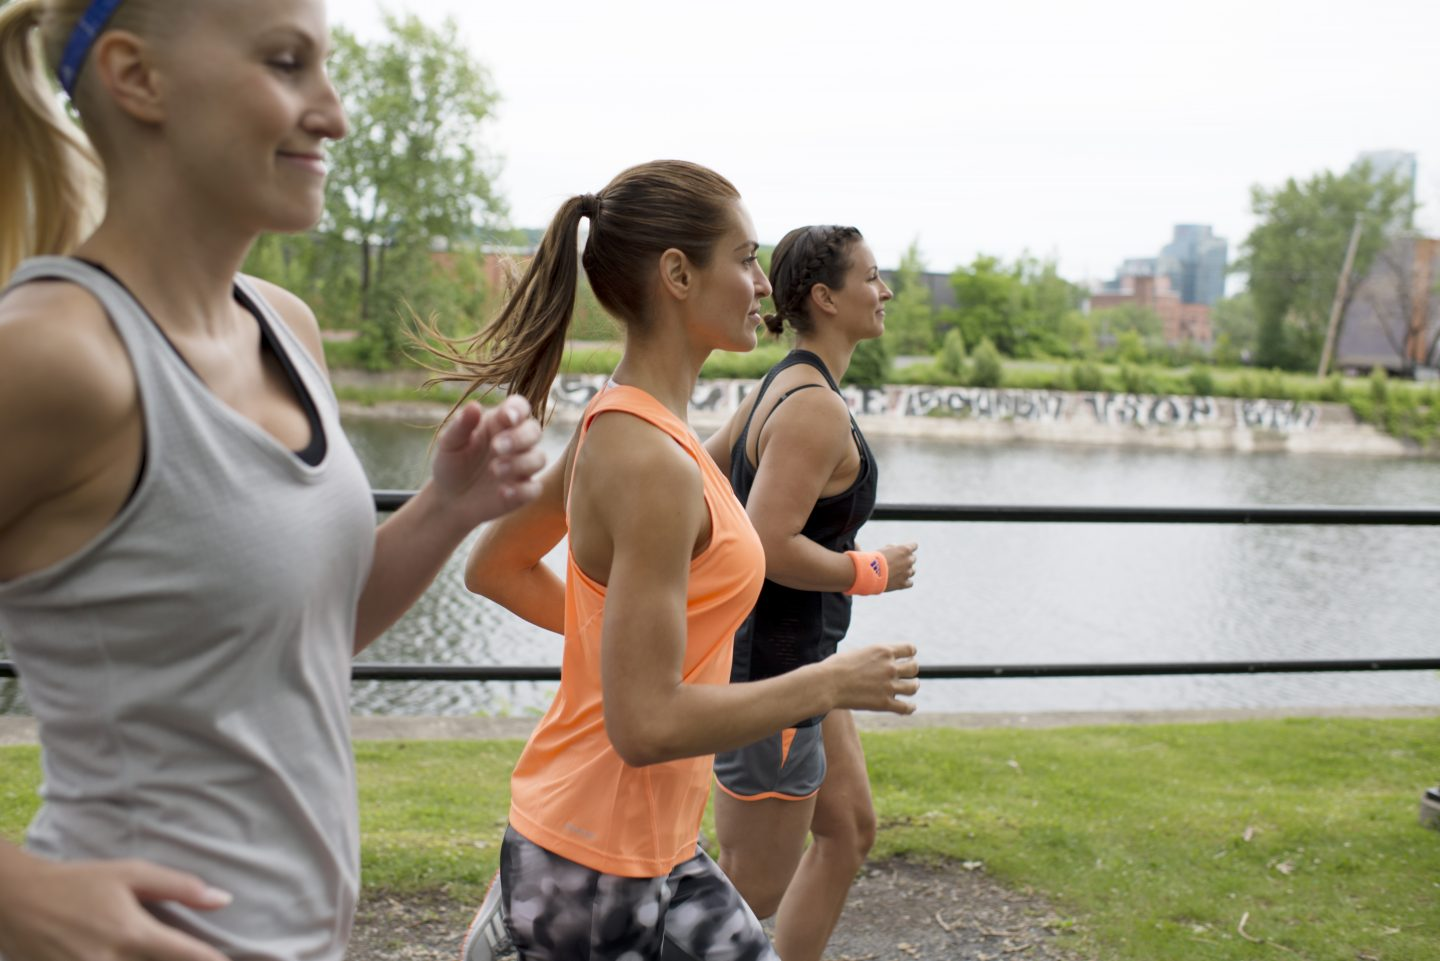 Three women running in nature next to a river. adidas partner workout, women running group, future trends, fitness, well-being, health, Future Fit Forecast 2017